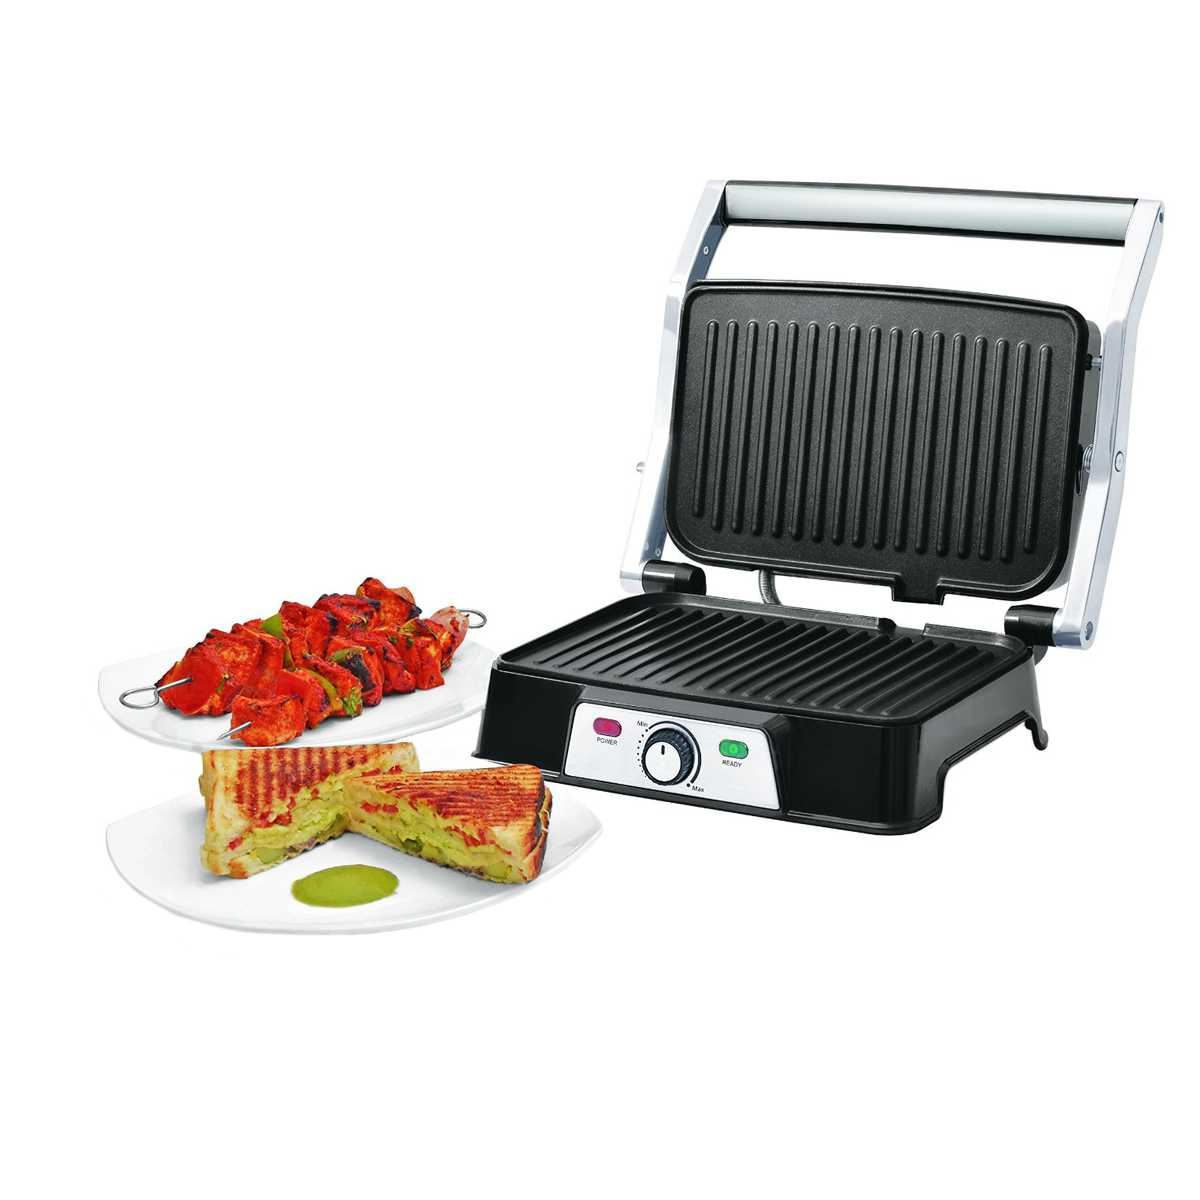 Picture of Oster Sandwich Maker CKSTPM129